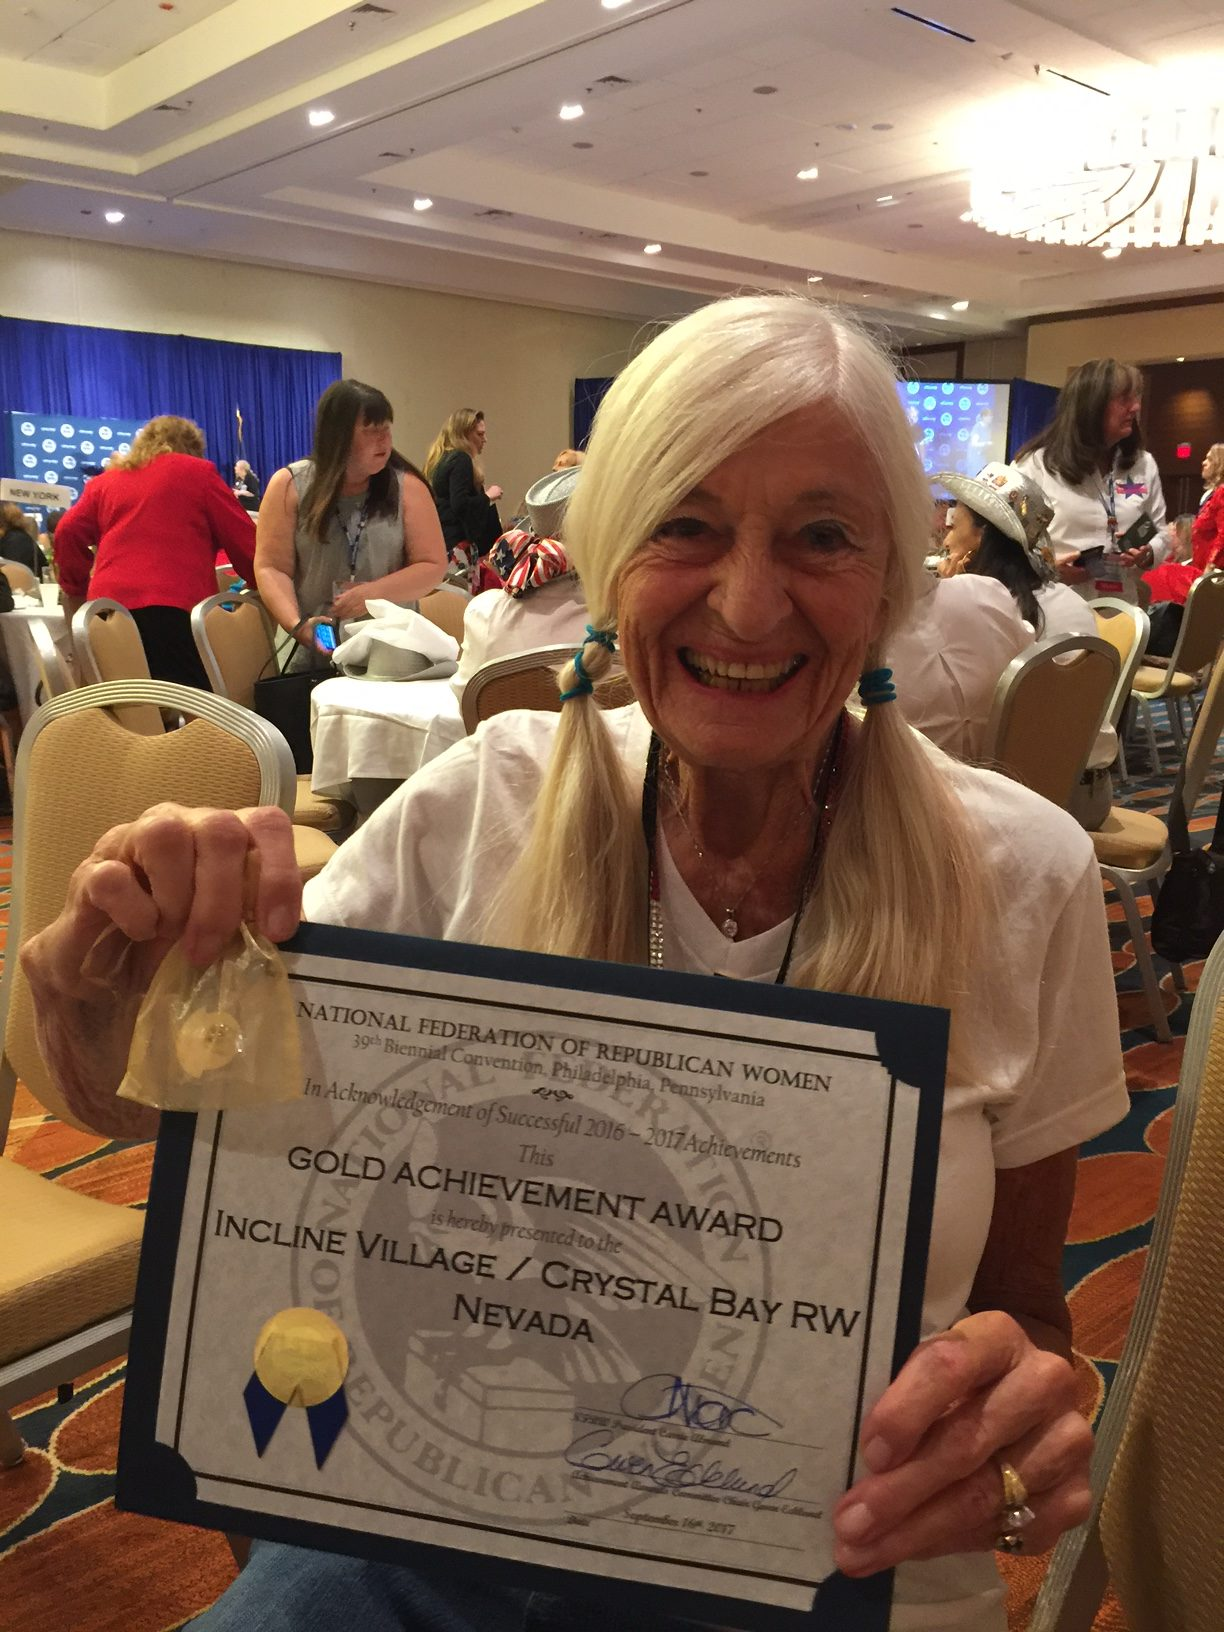 A beaming Joanellen Slocumb proudly displays our club's Gold Achievement Award.